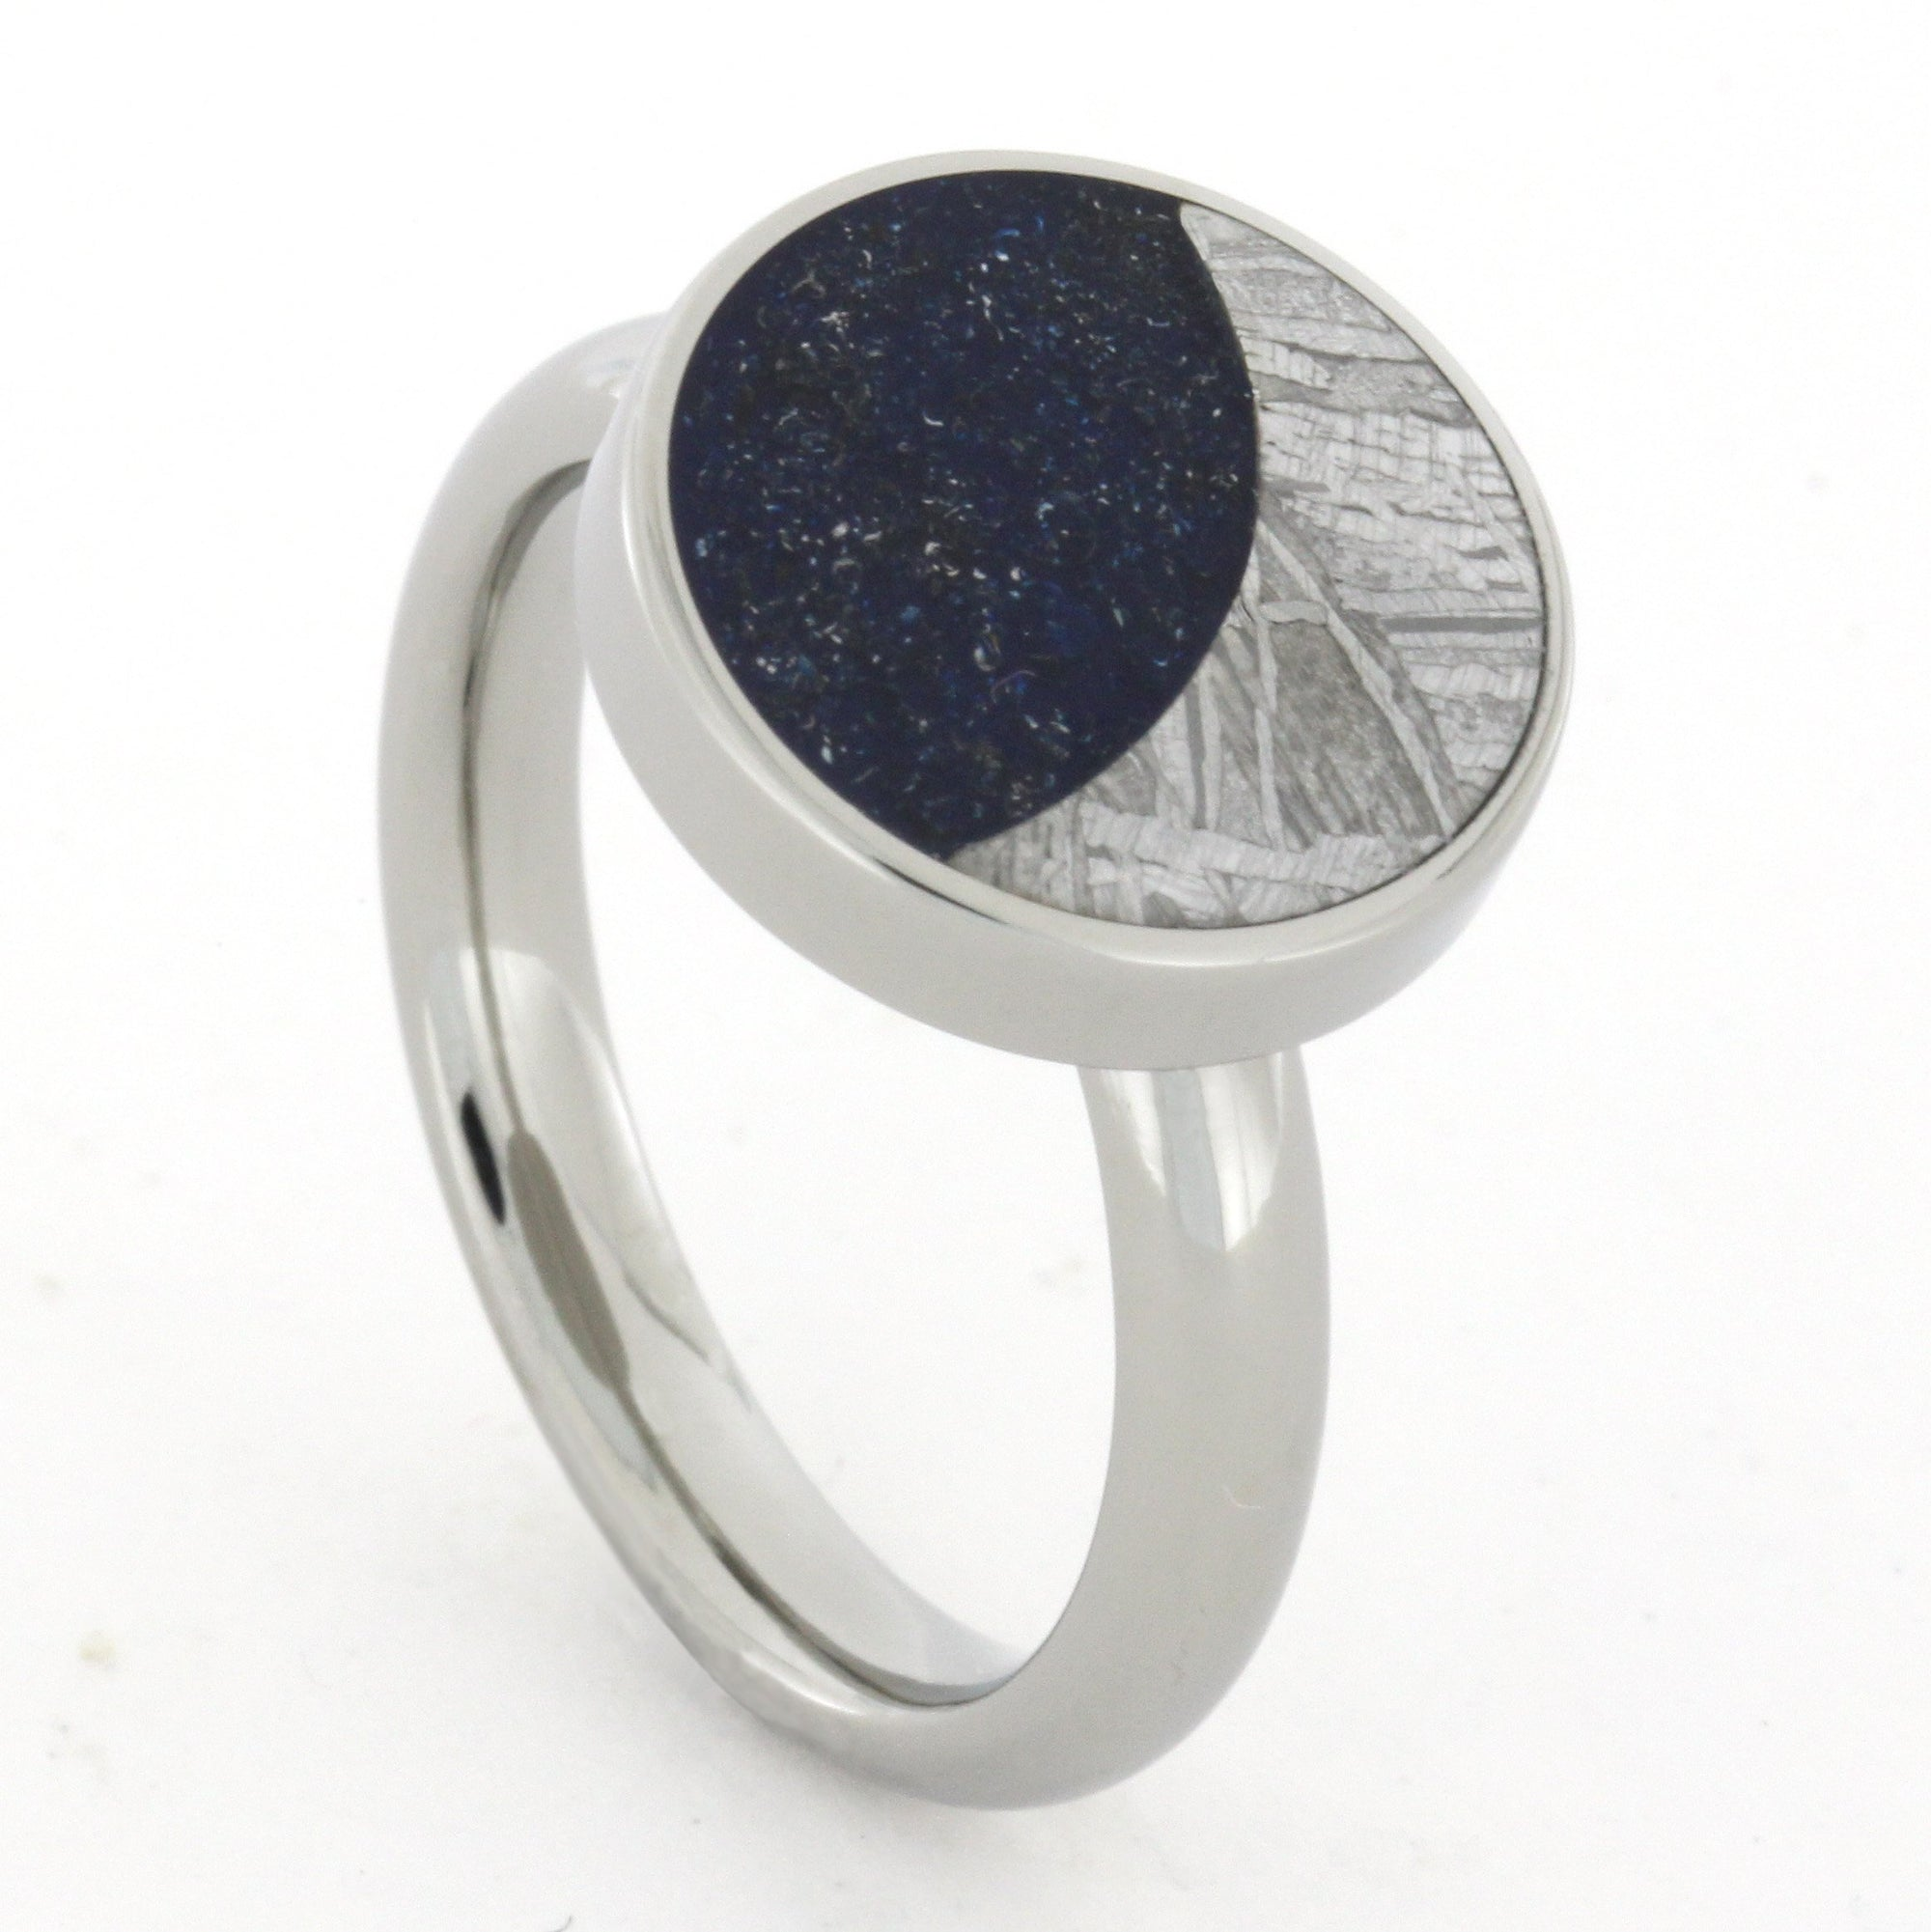 Starry Night Ring with Meteorite Moon and Blue Stardust